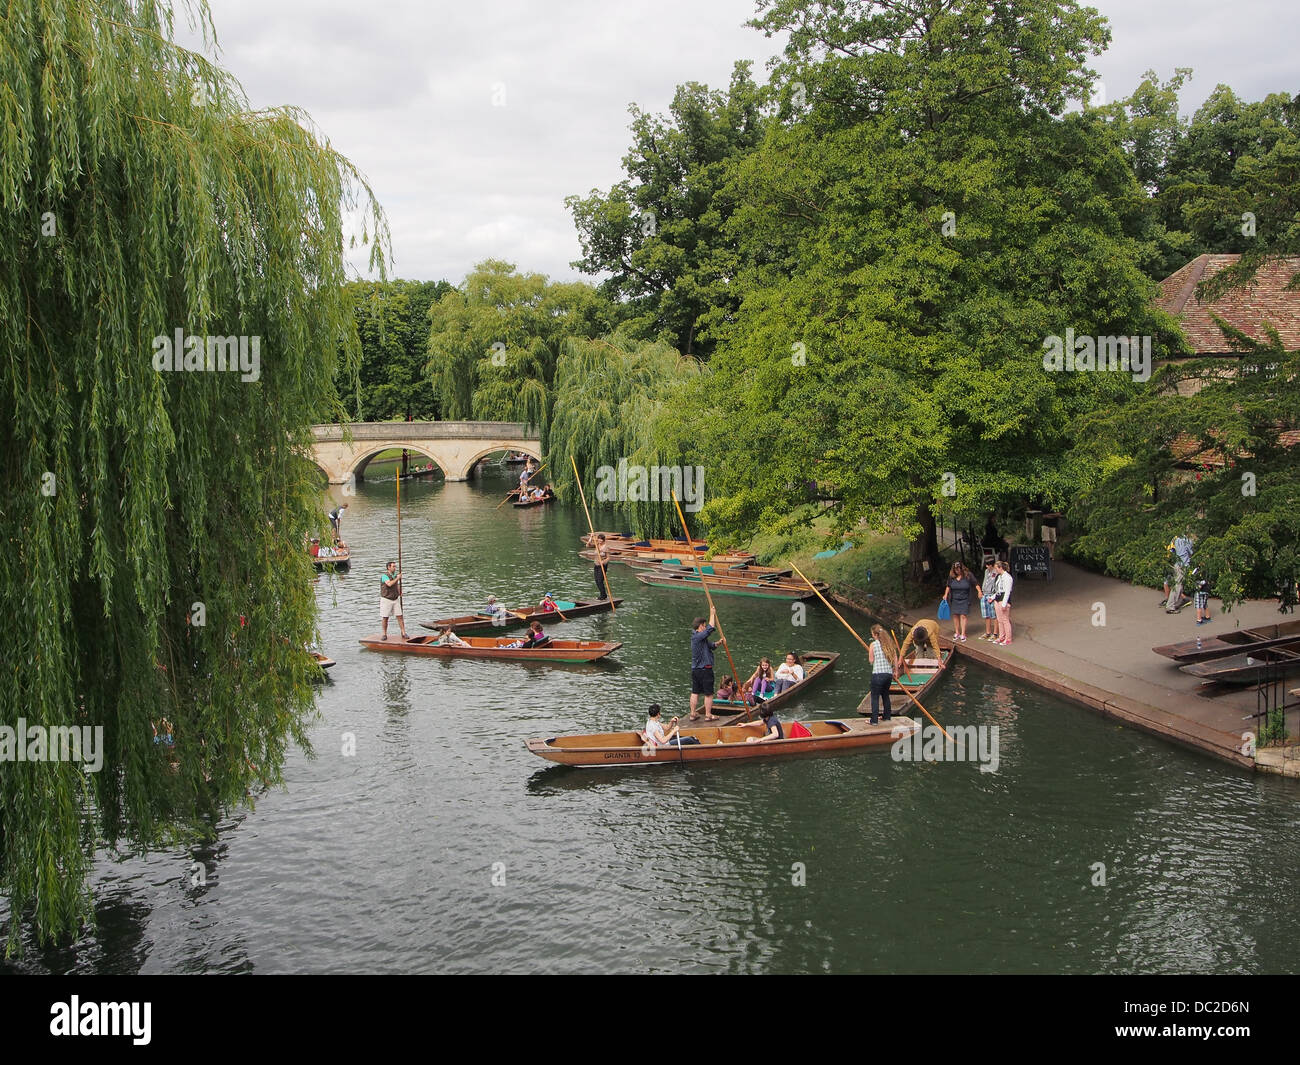 Cambridge University punting on the river Cam - Stock Image